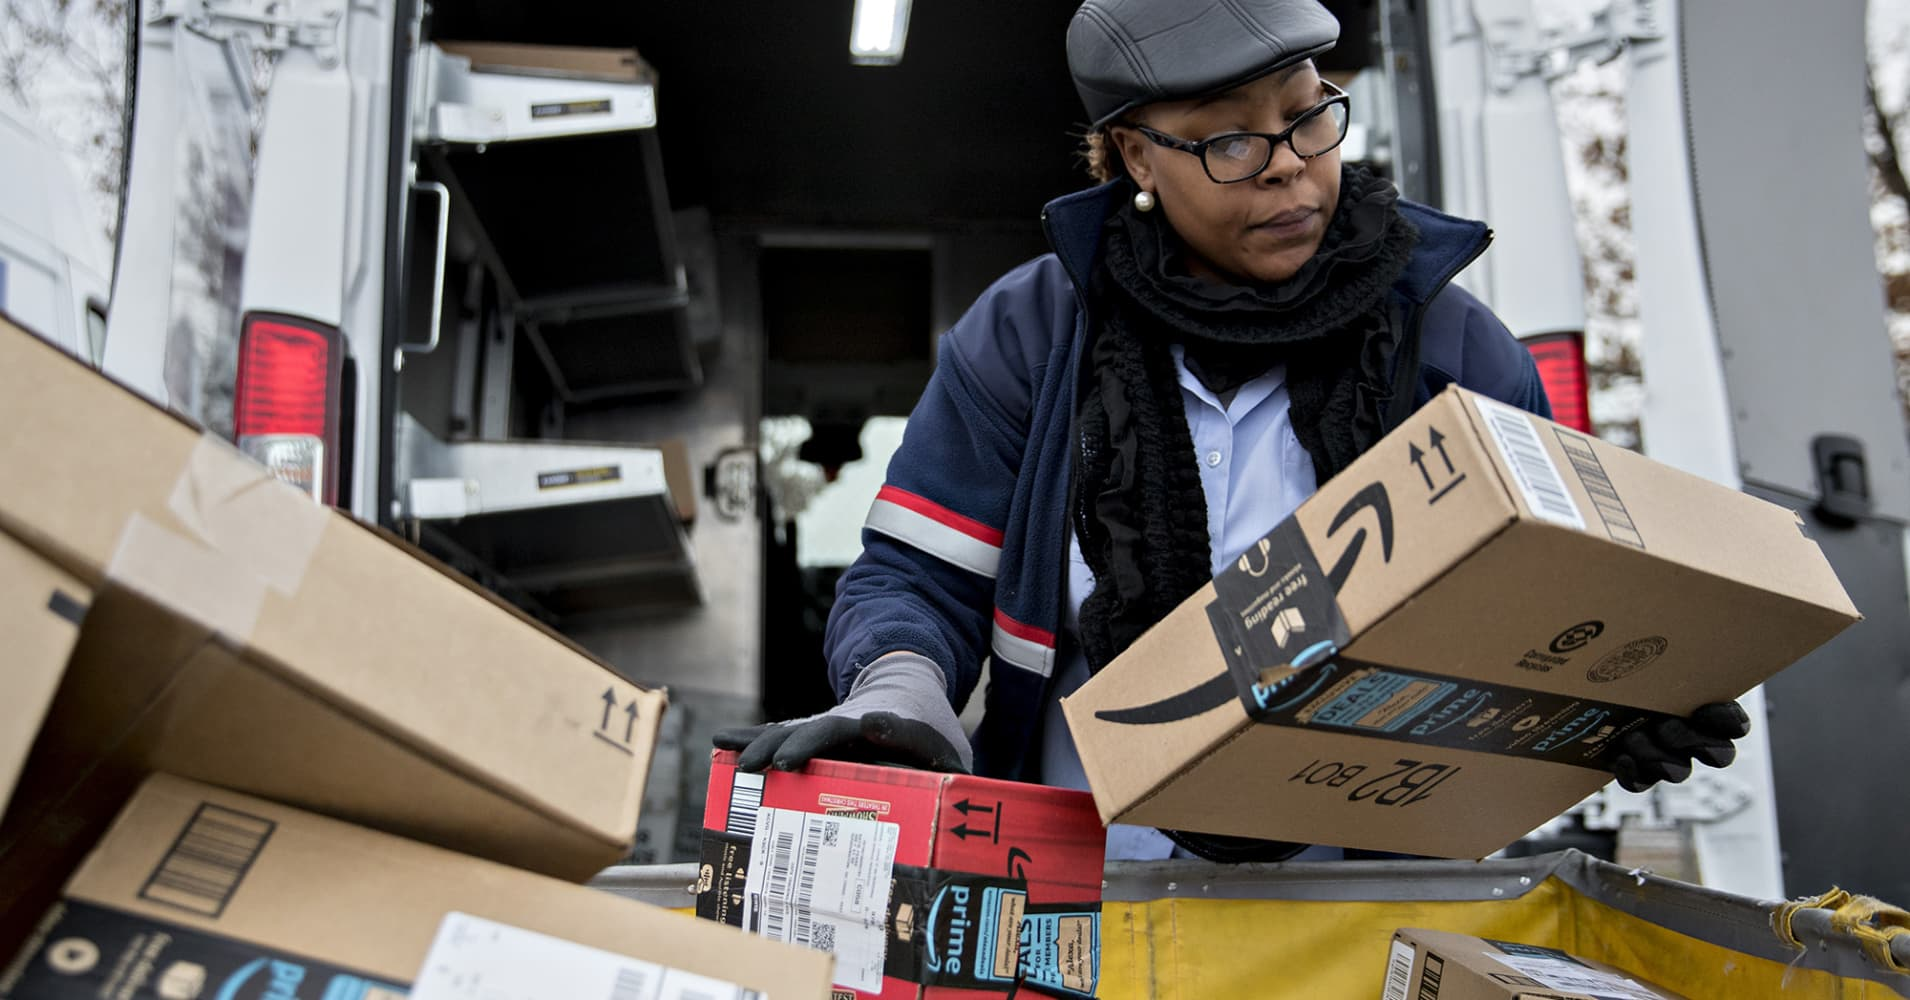 A letter carrier holds Amazon.com packages while preparing a vehicle for deliveries at a United States Postal Service processing and distribution center in Washington, D.C.